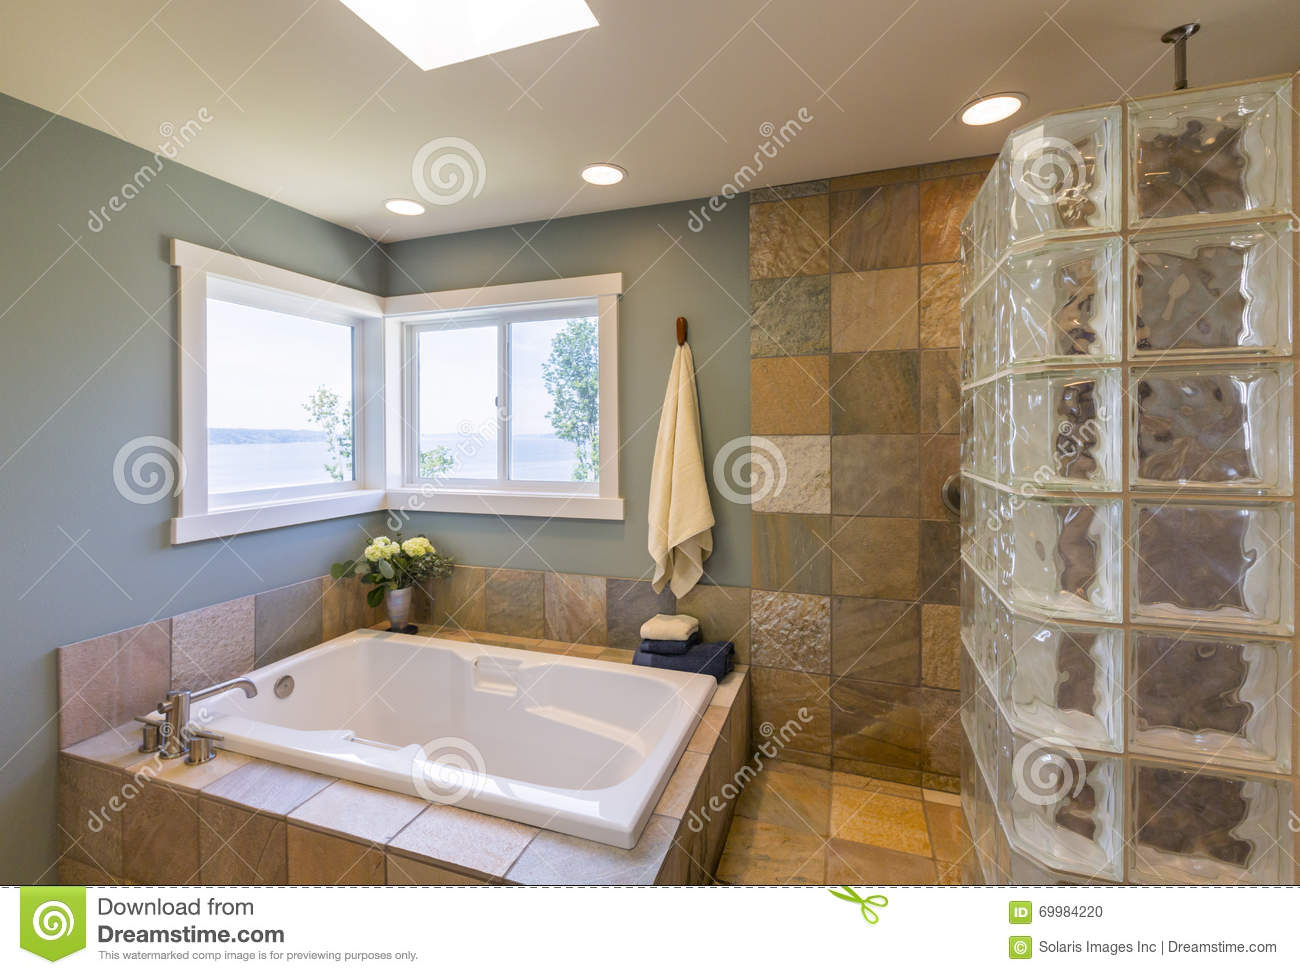 Contemporary Upscale Home Spa Bathroom Interior With Acrylic Soaking ...